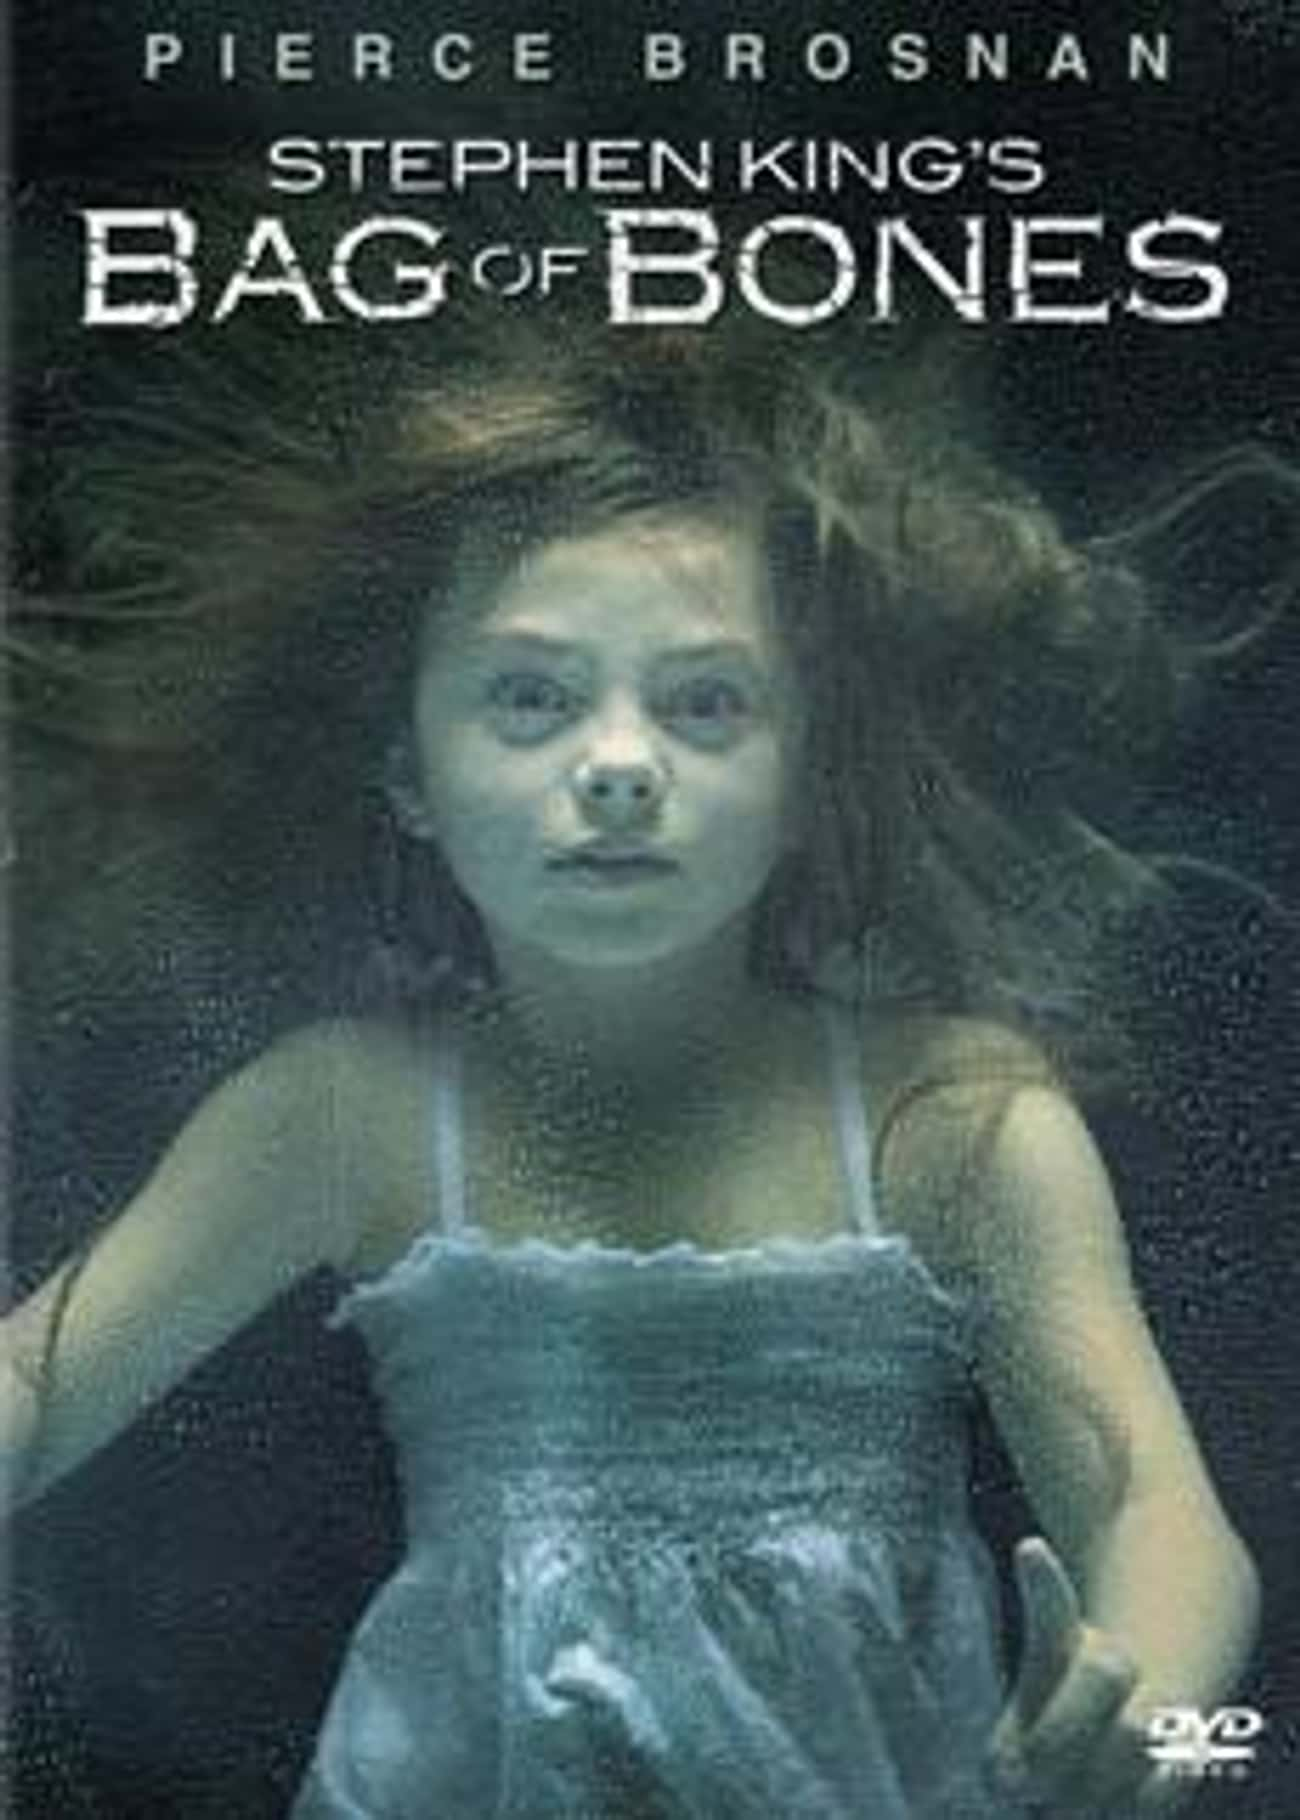 Bag of Bones is listed (or ranked) 1 on the list Stephen King Shows and TV Series